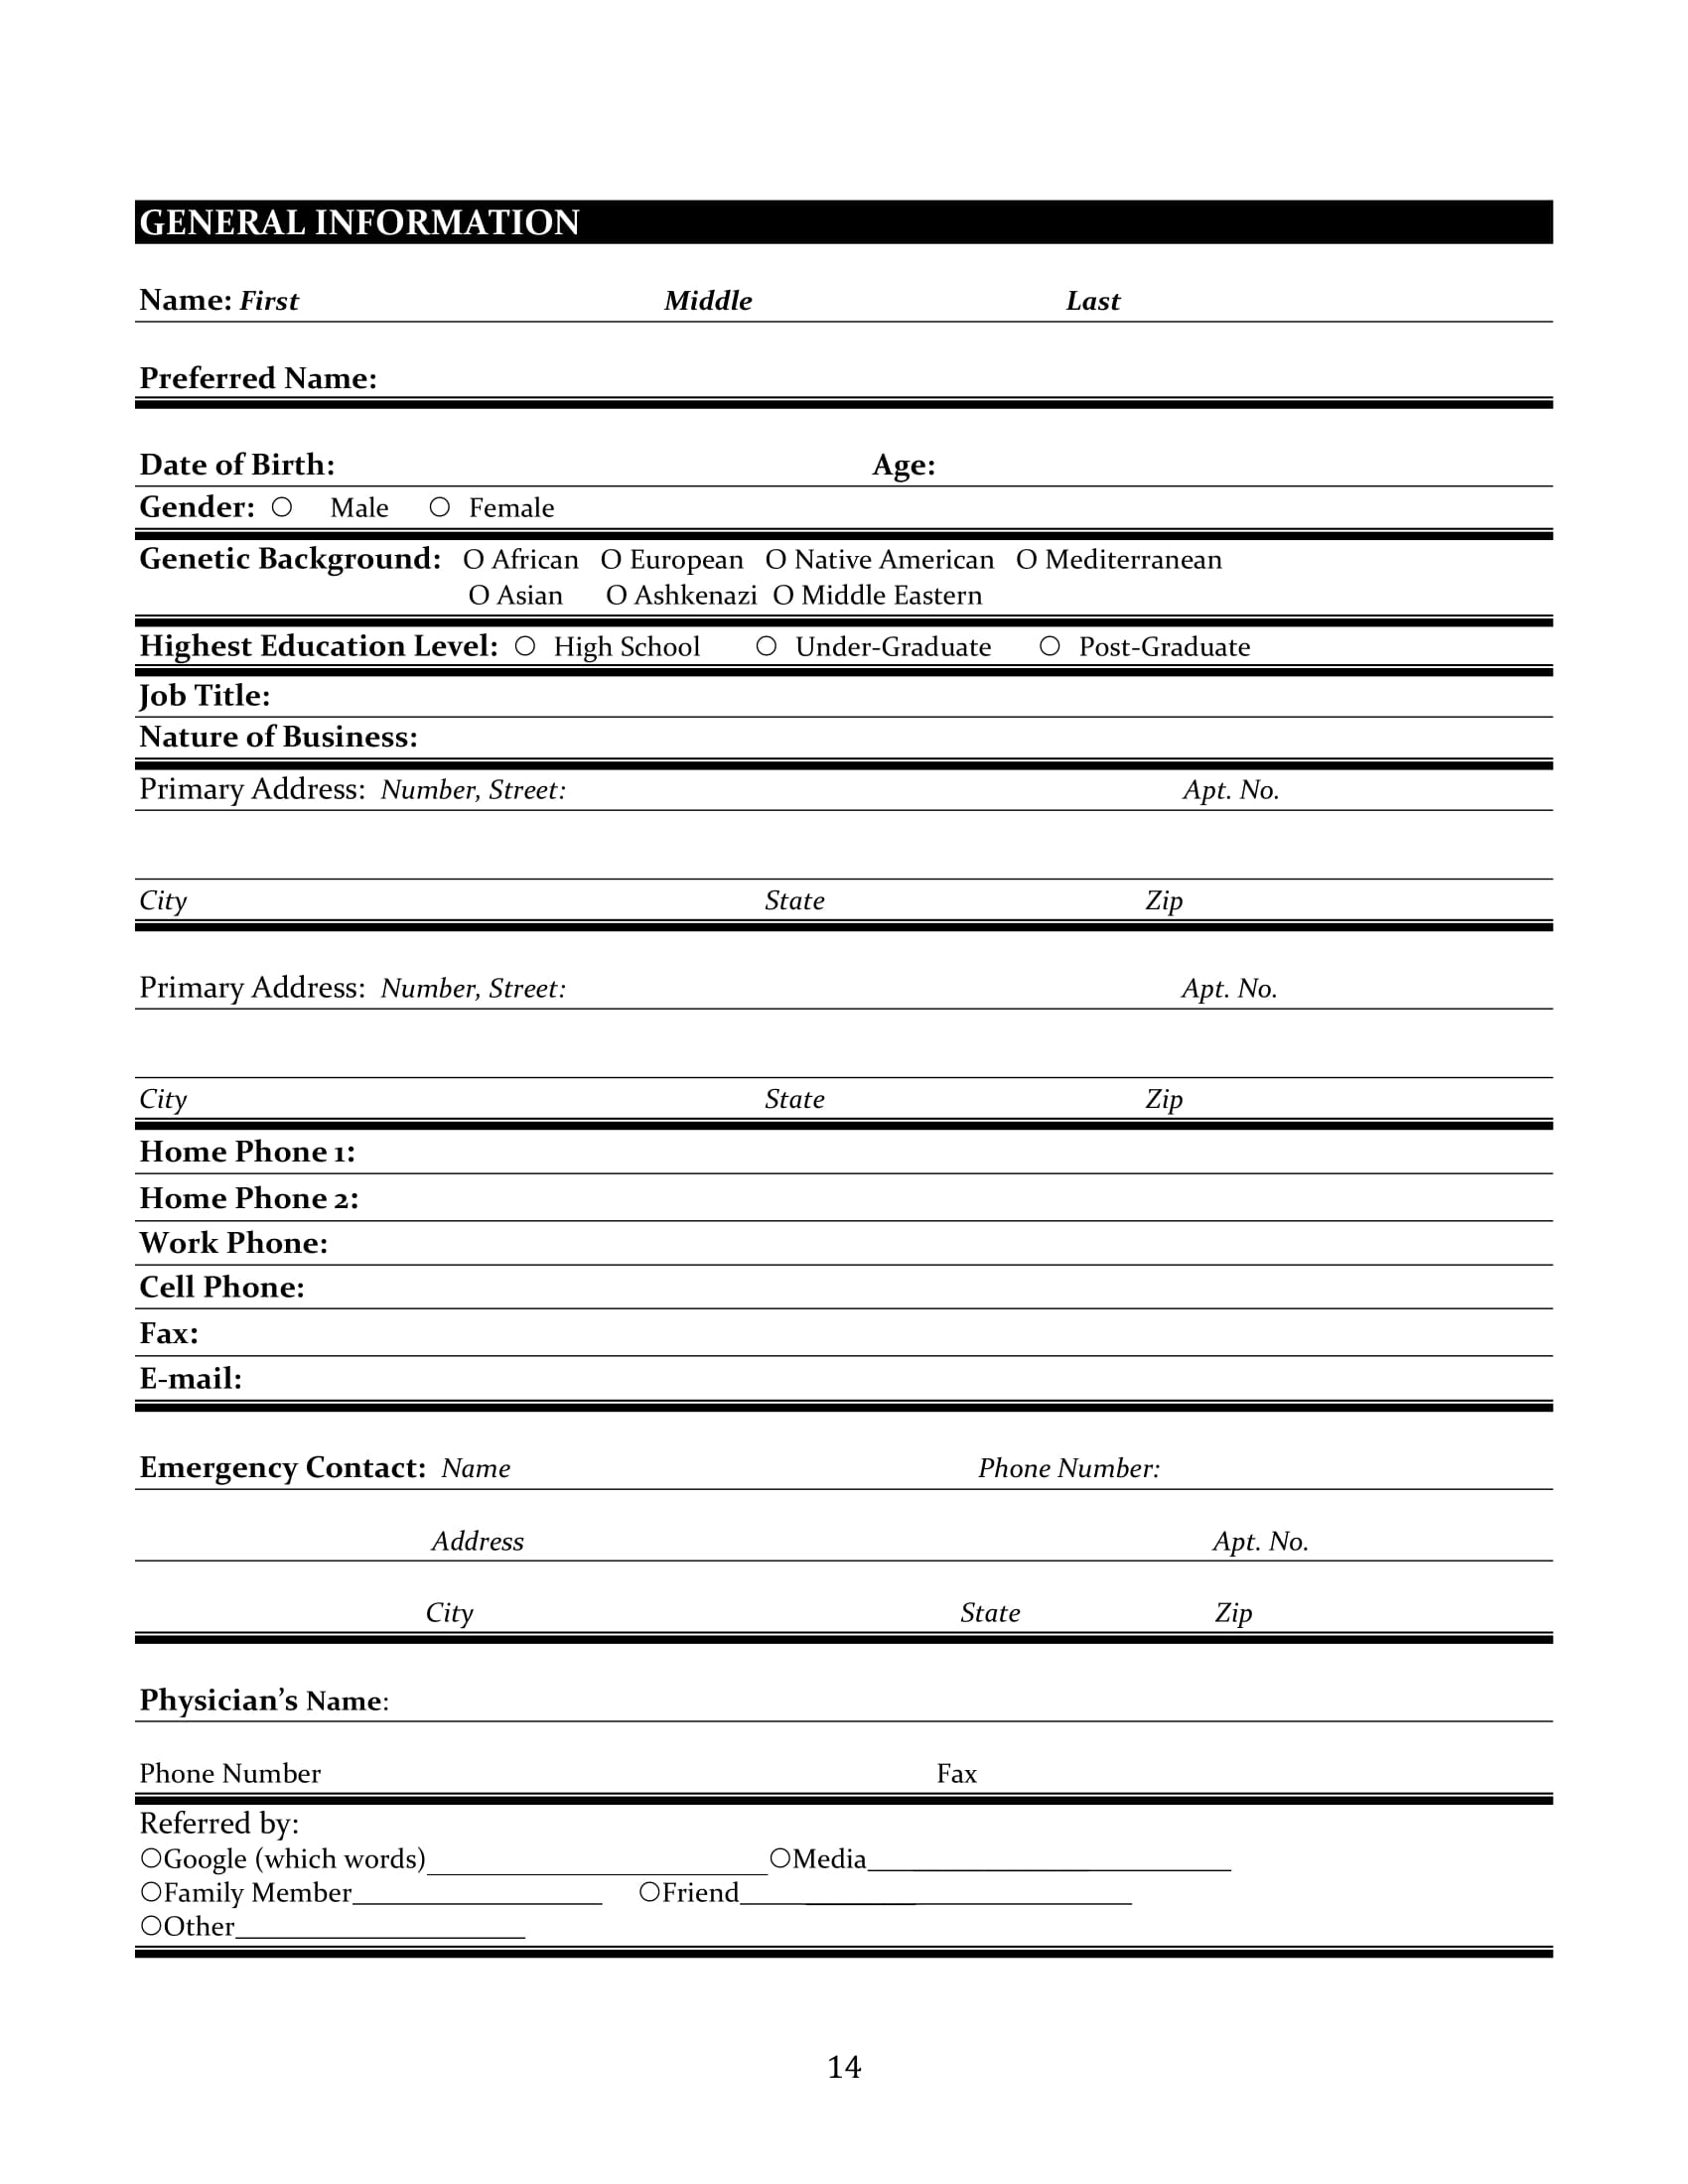 functional medicine adult patient intake form 14